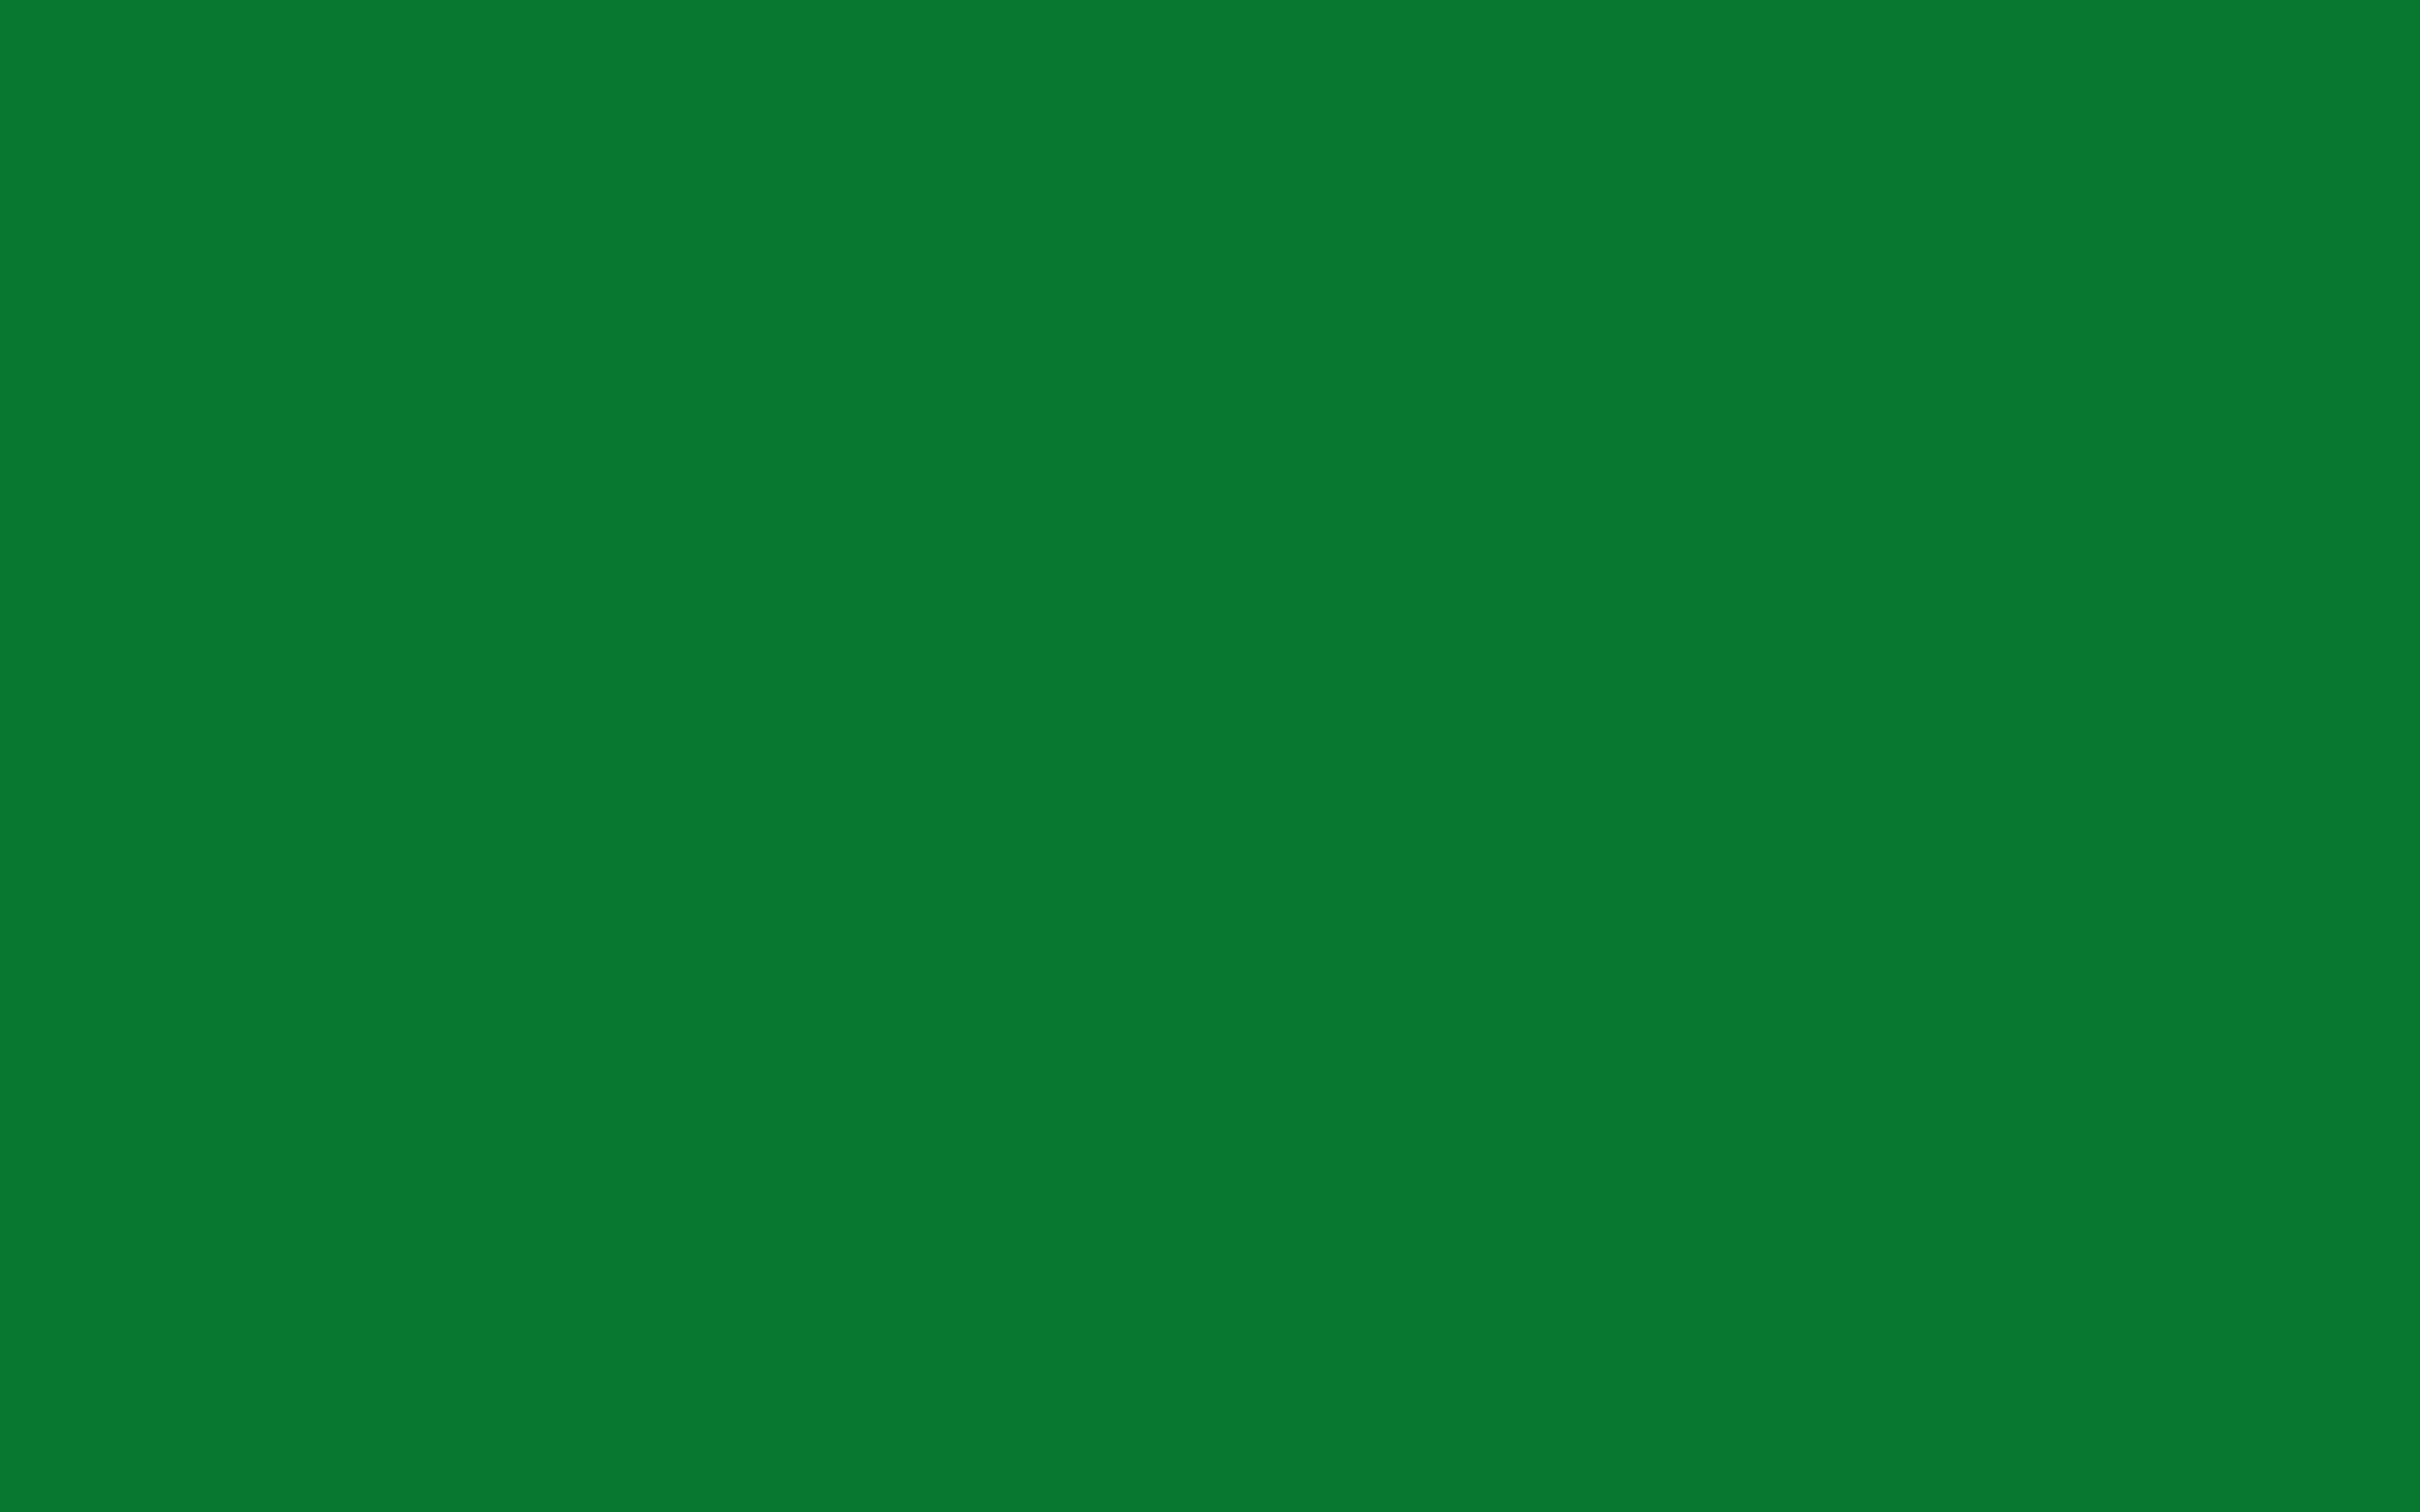 2560x1600 La Salle Green Solid Color Background